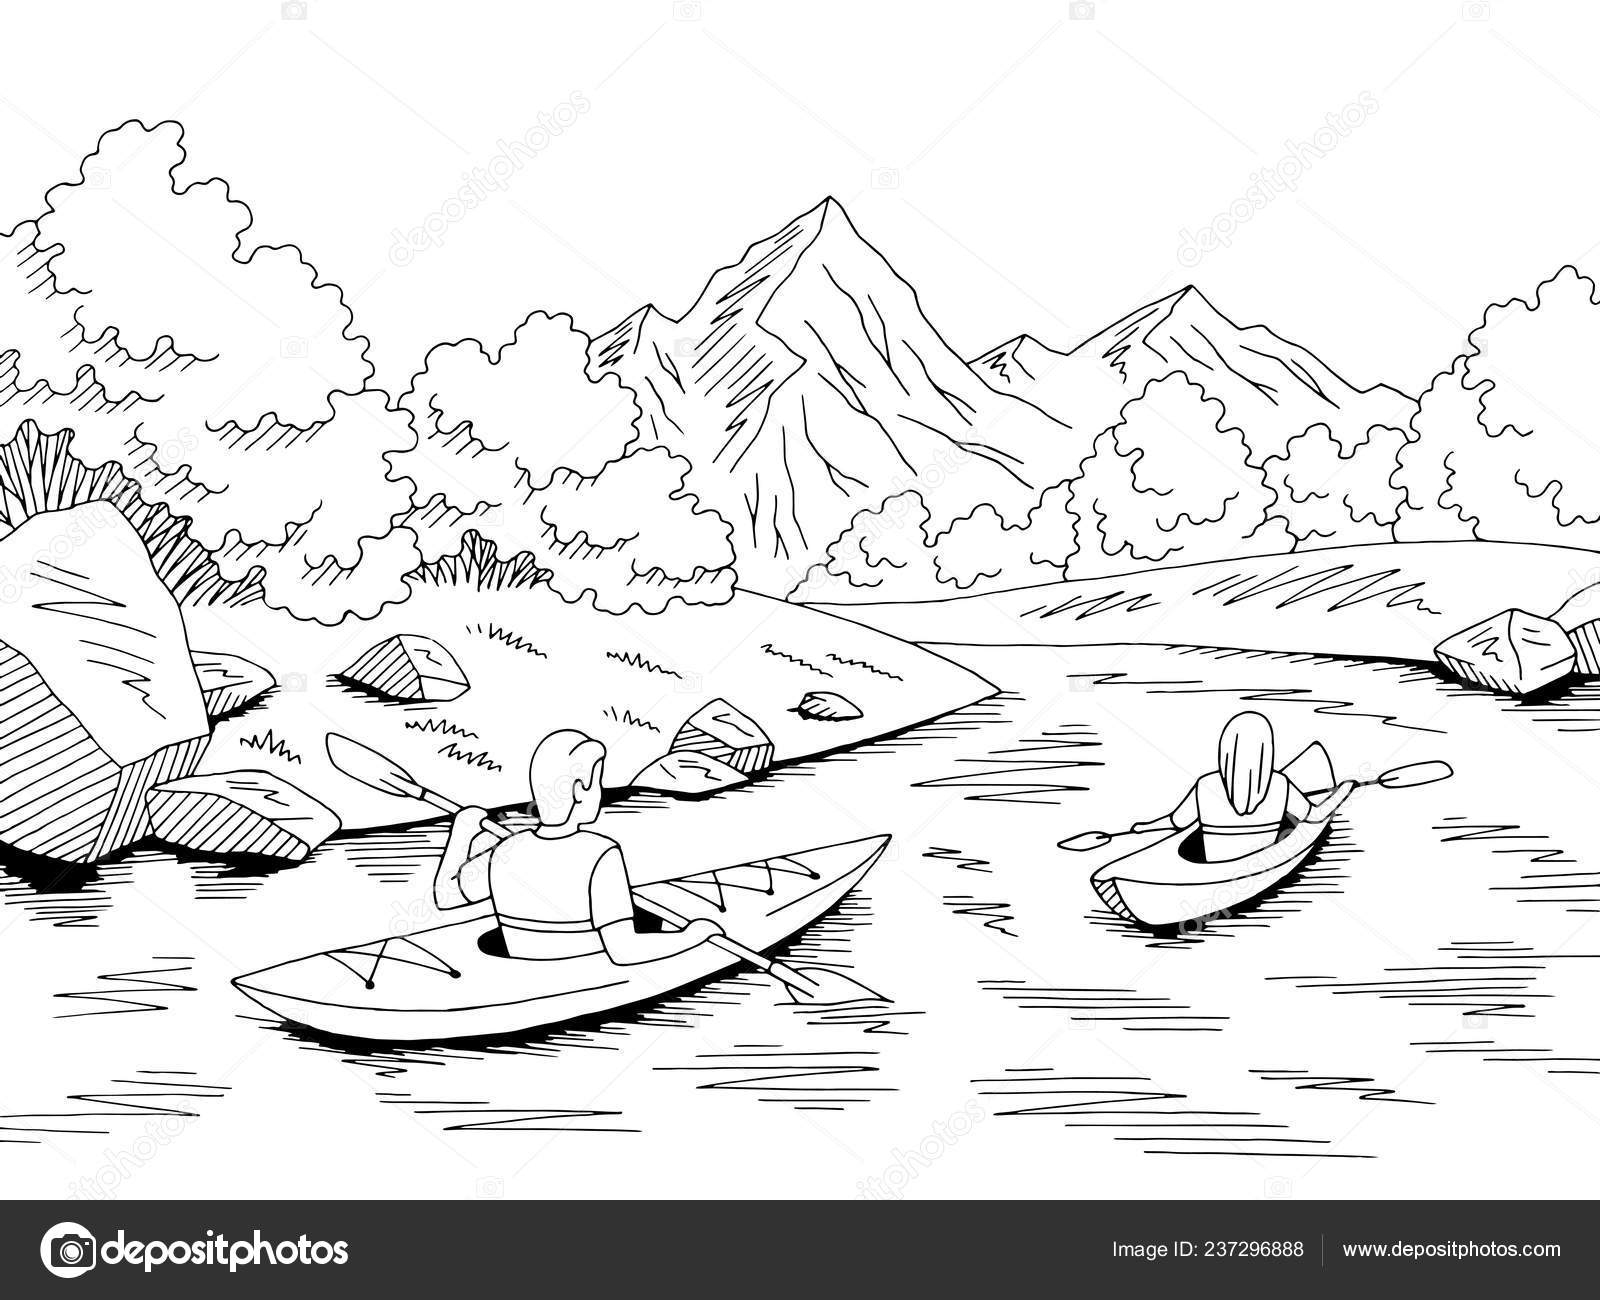 kayak boat travel graphic black white river landscape sketch illustration stock vector c aluna11 237296888 https depositphotos com 237296888 stock illustration kayak boat travel graphic black html